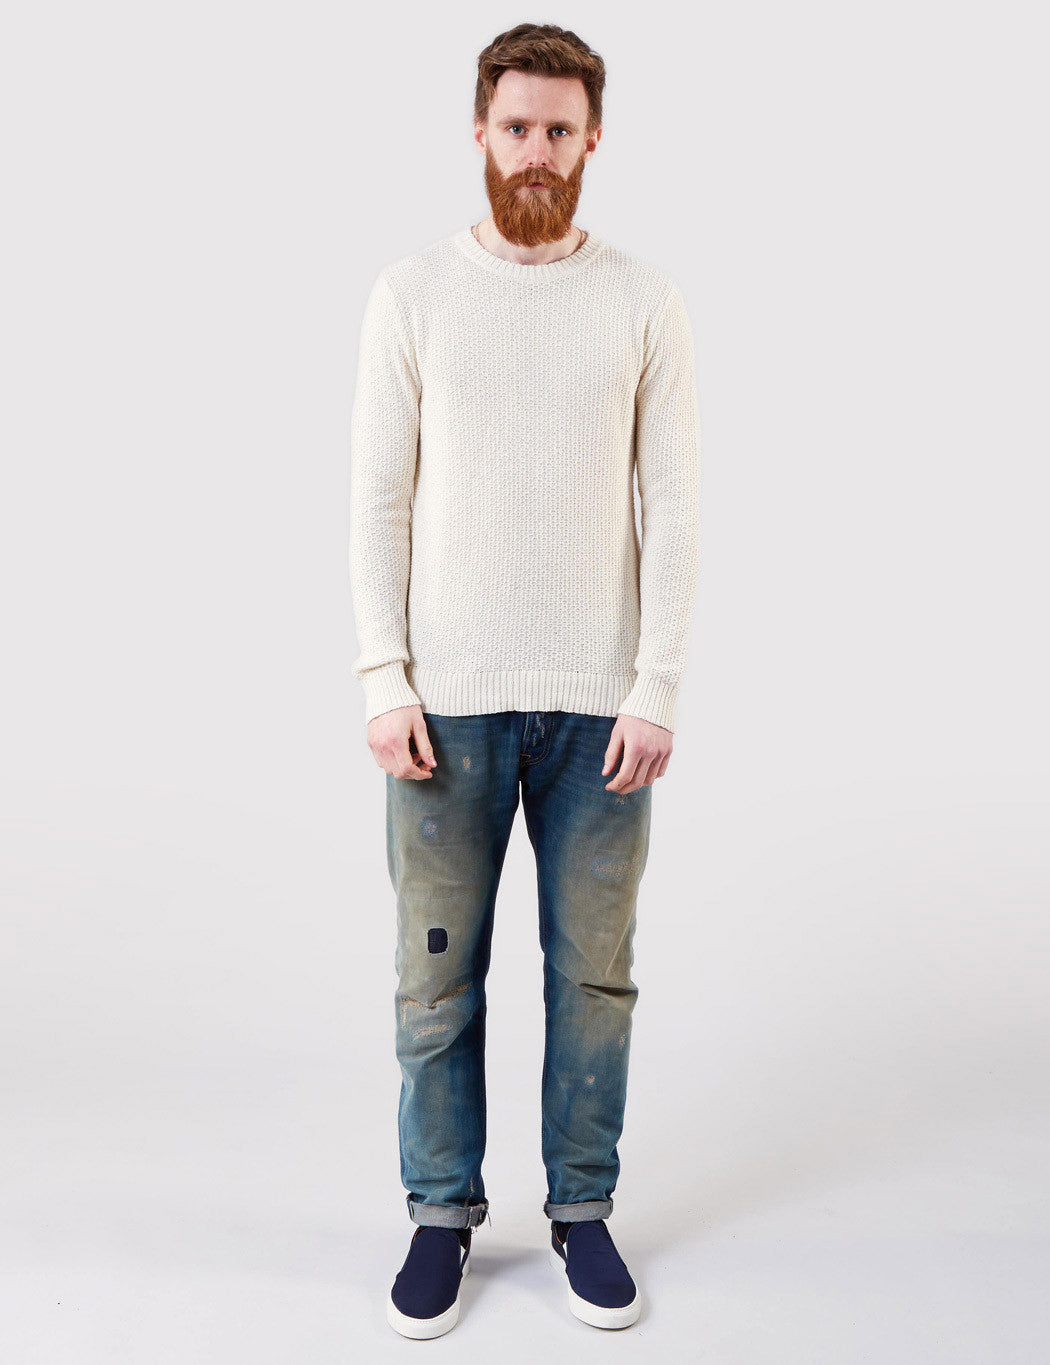 Gant Rugger Textured Sweater - Cream